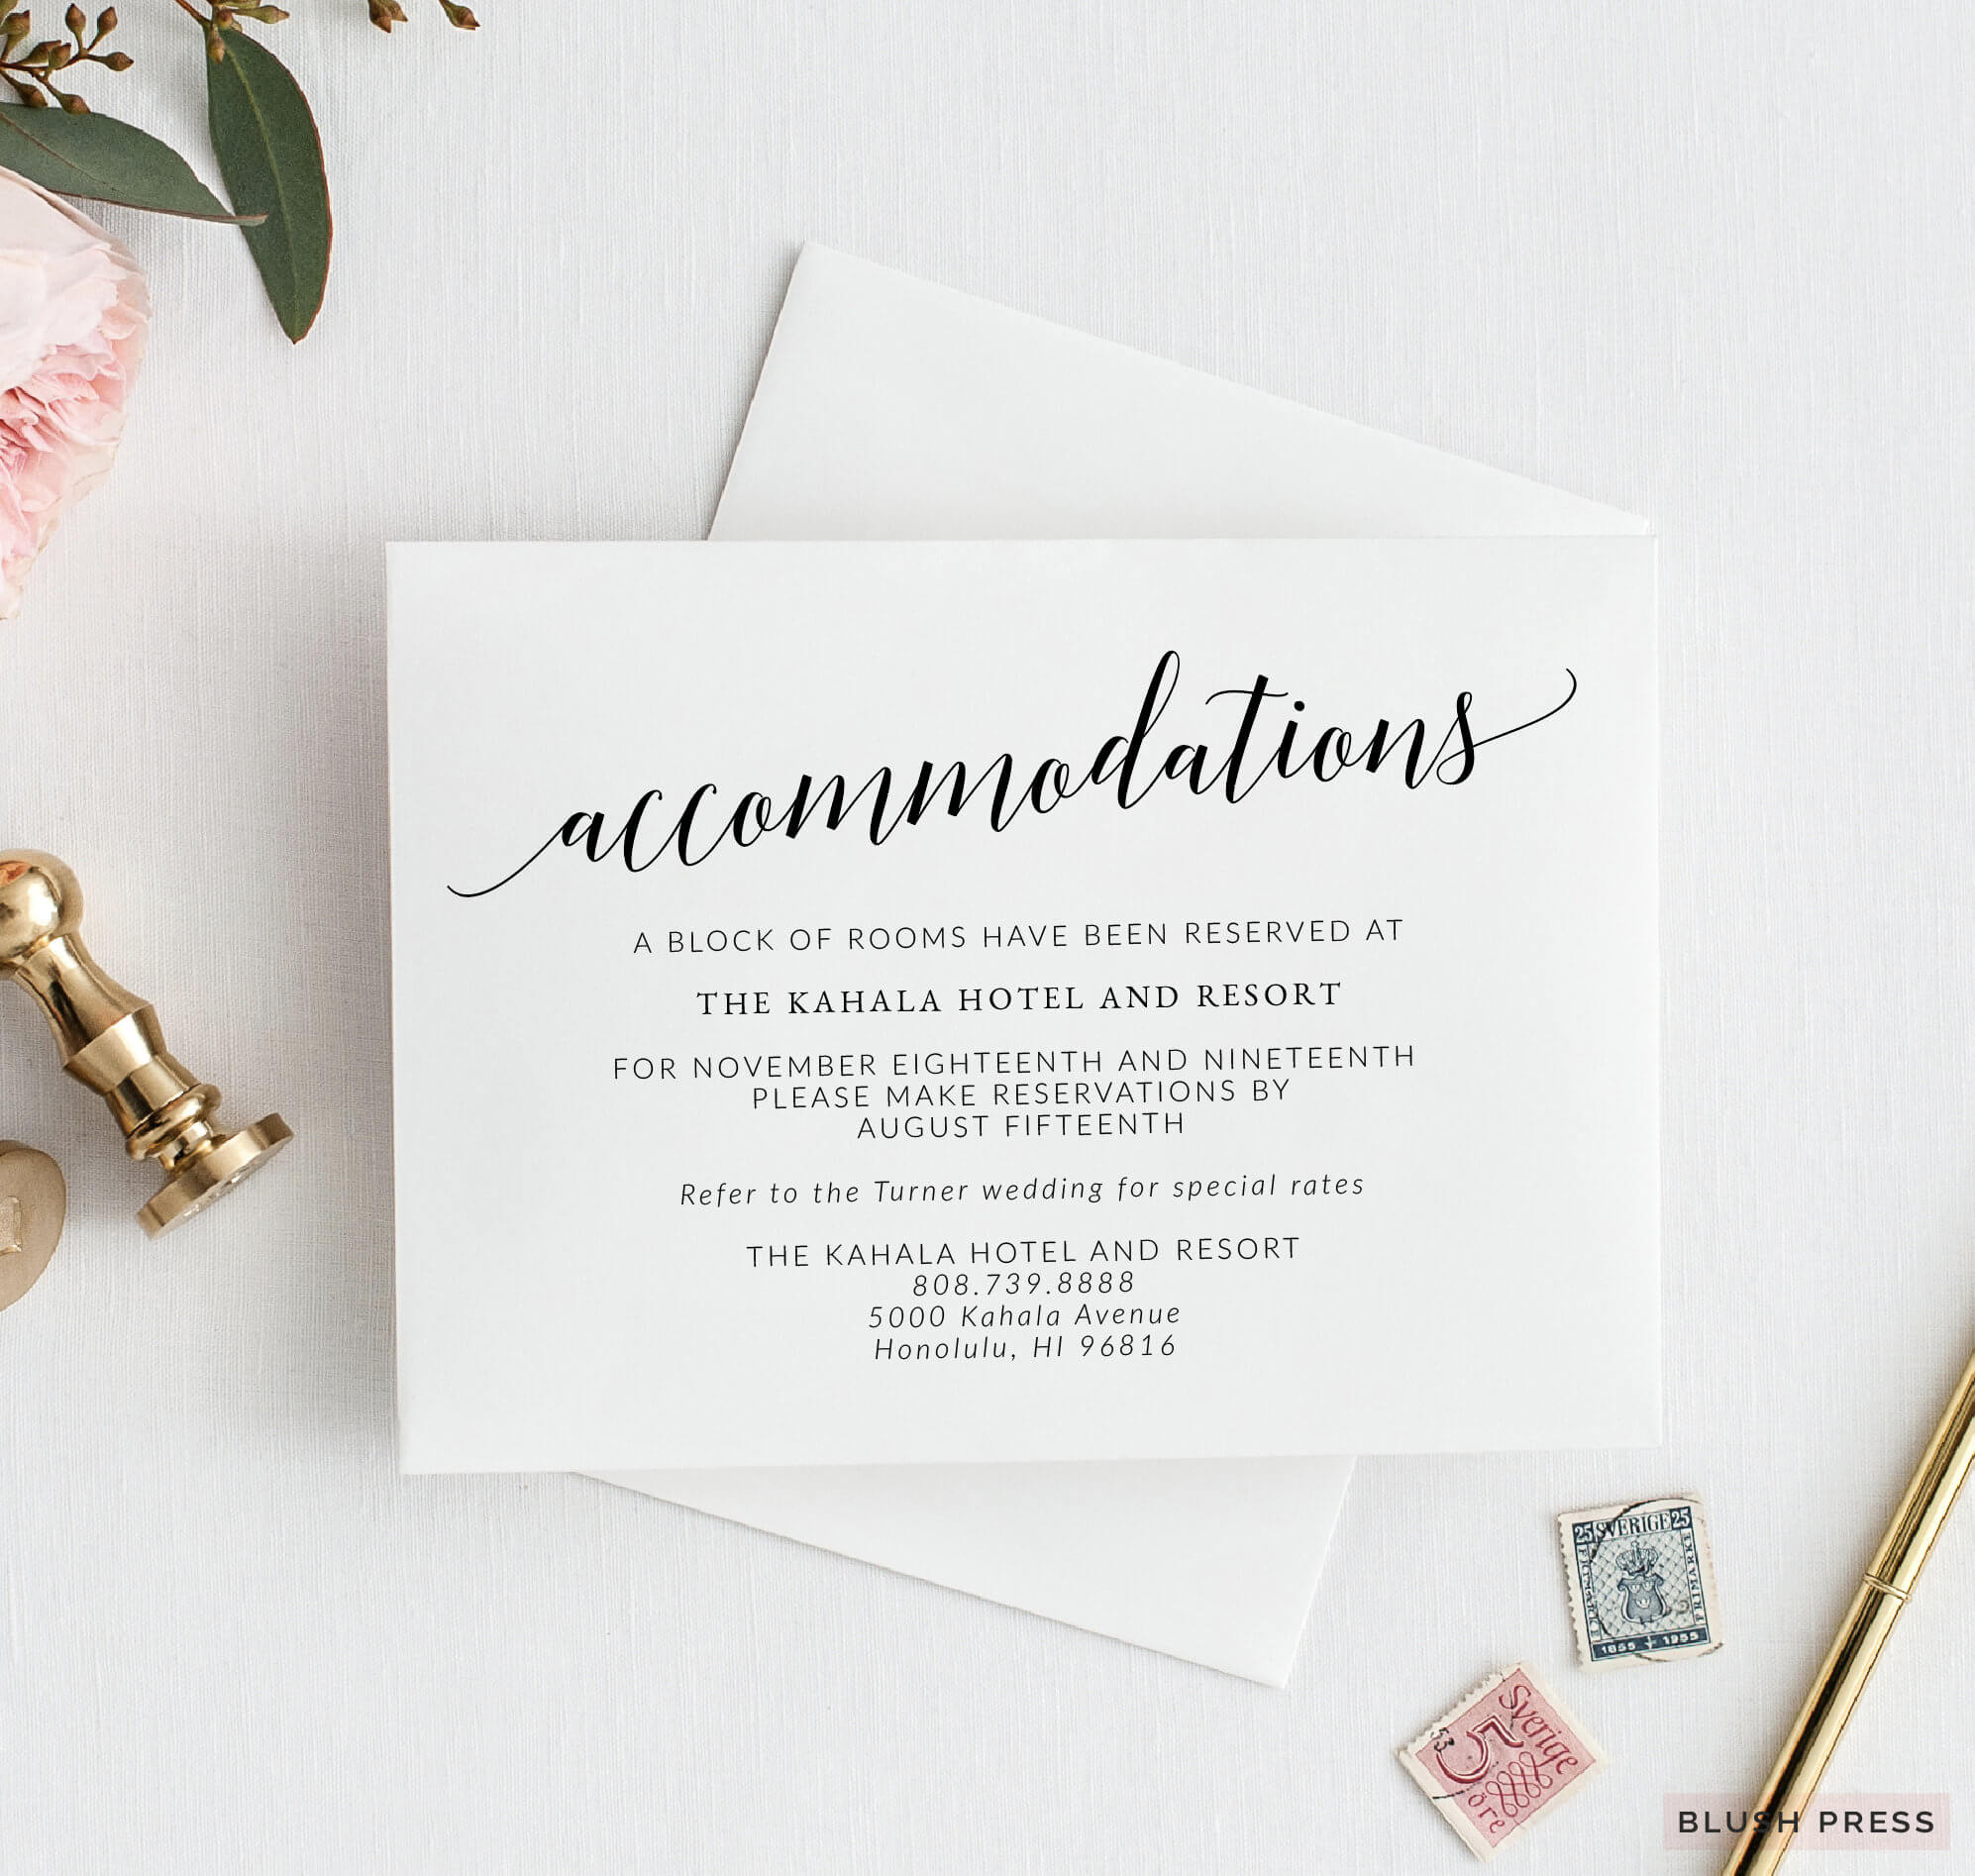 Wedding Accommodations Card Template, Printable Wedding Details Insert,  Wedding Info Card, Enclosure Card, Savannah Collection Sav-037 with regard to Wedding Hotel Information Card Template